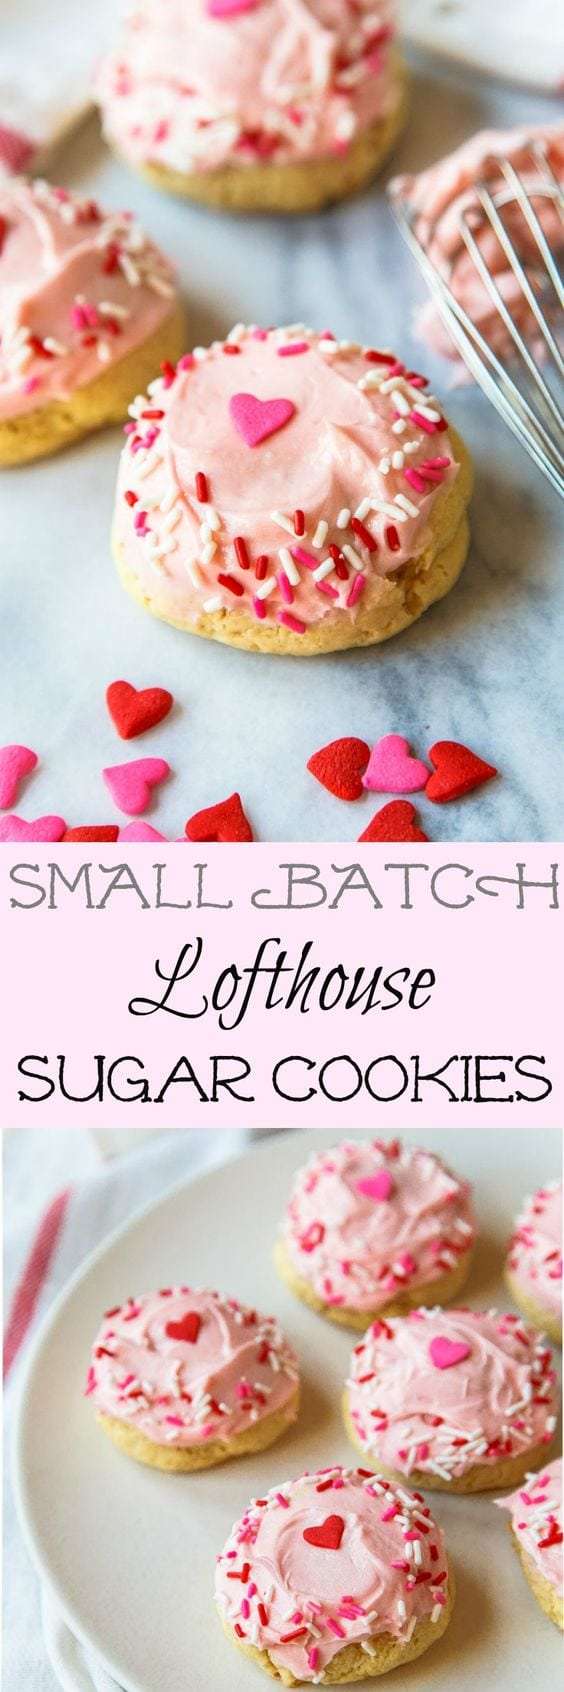 Lofthouse sugar cookies recipe: a small batch of the copycat grocery store sugar cookies with colorful frosting and sprinkles.